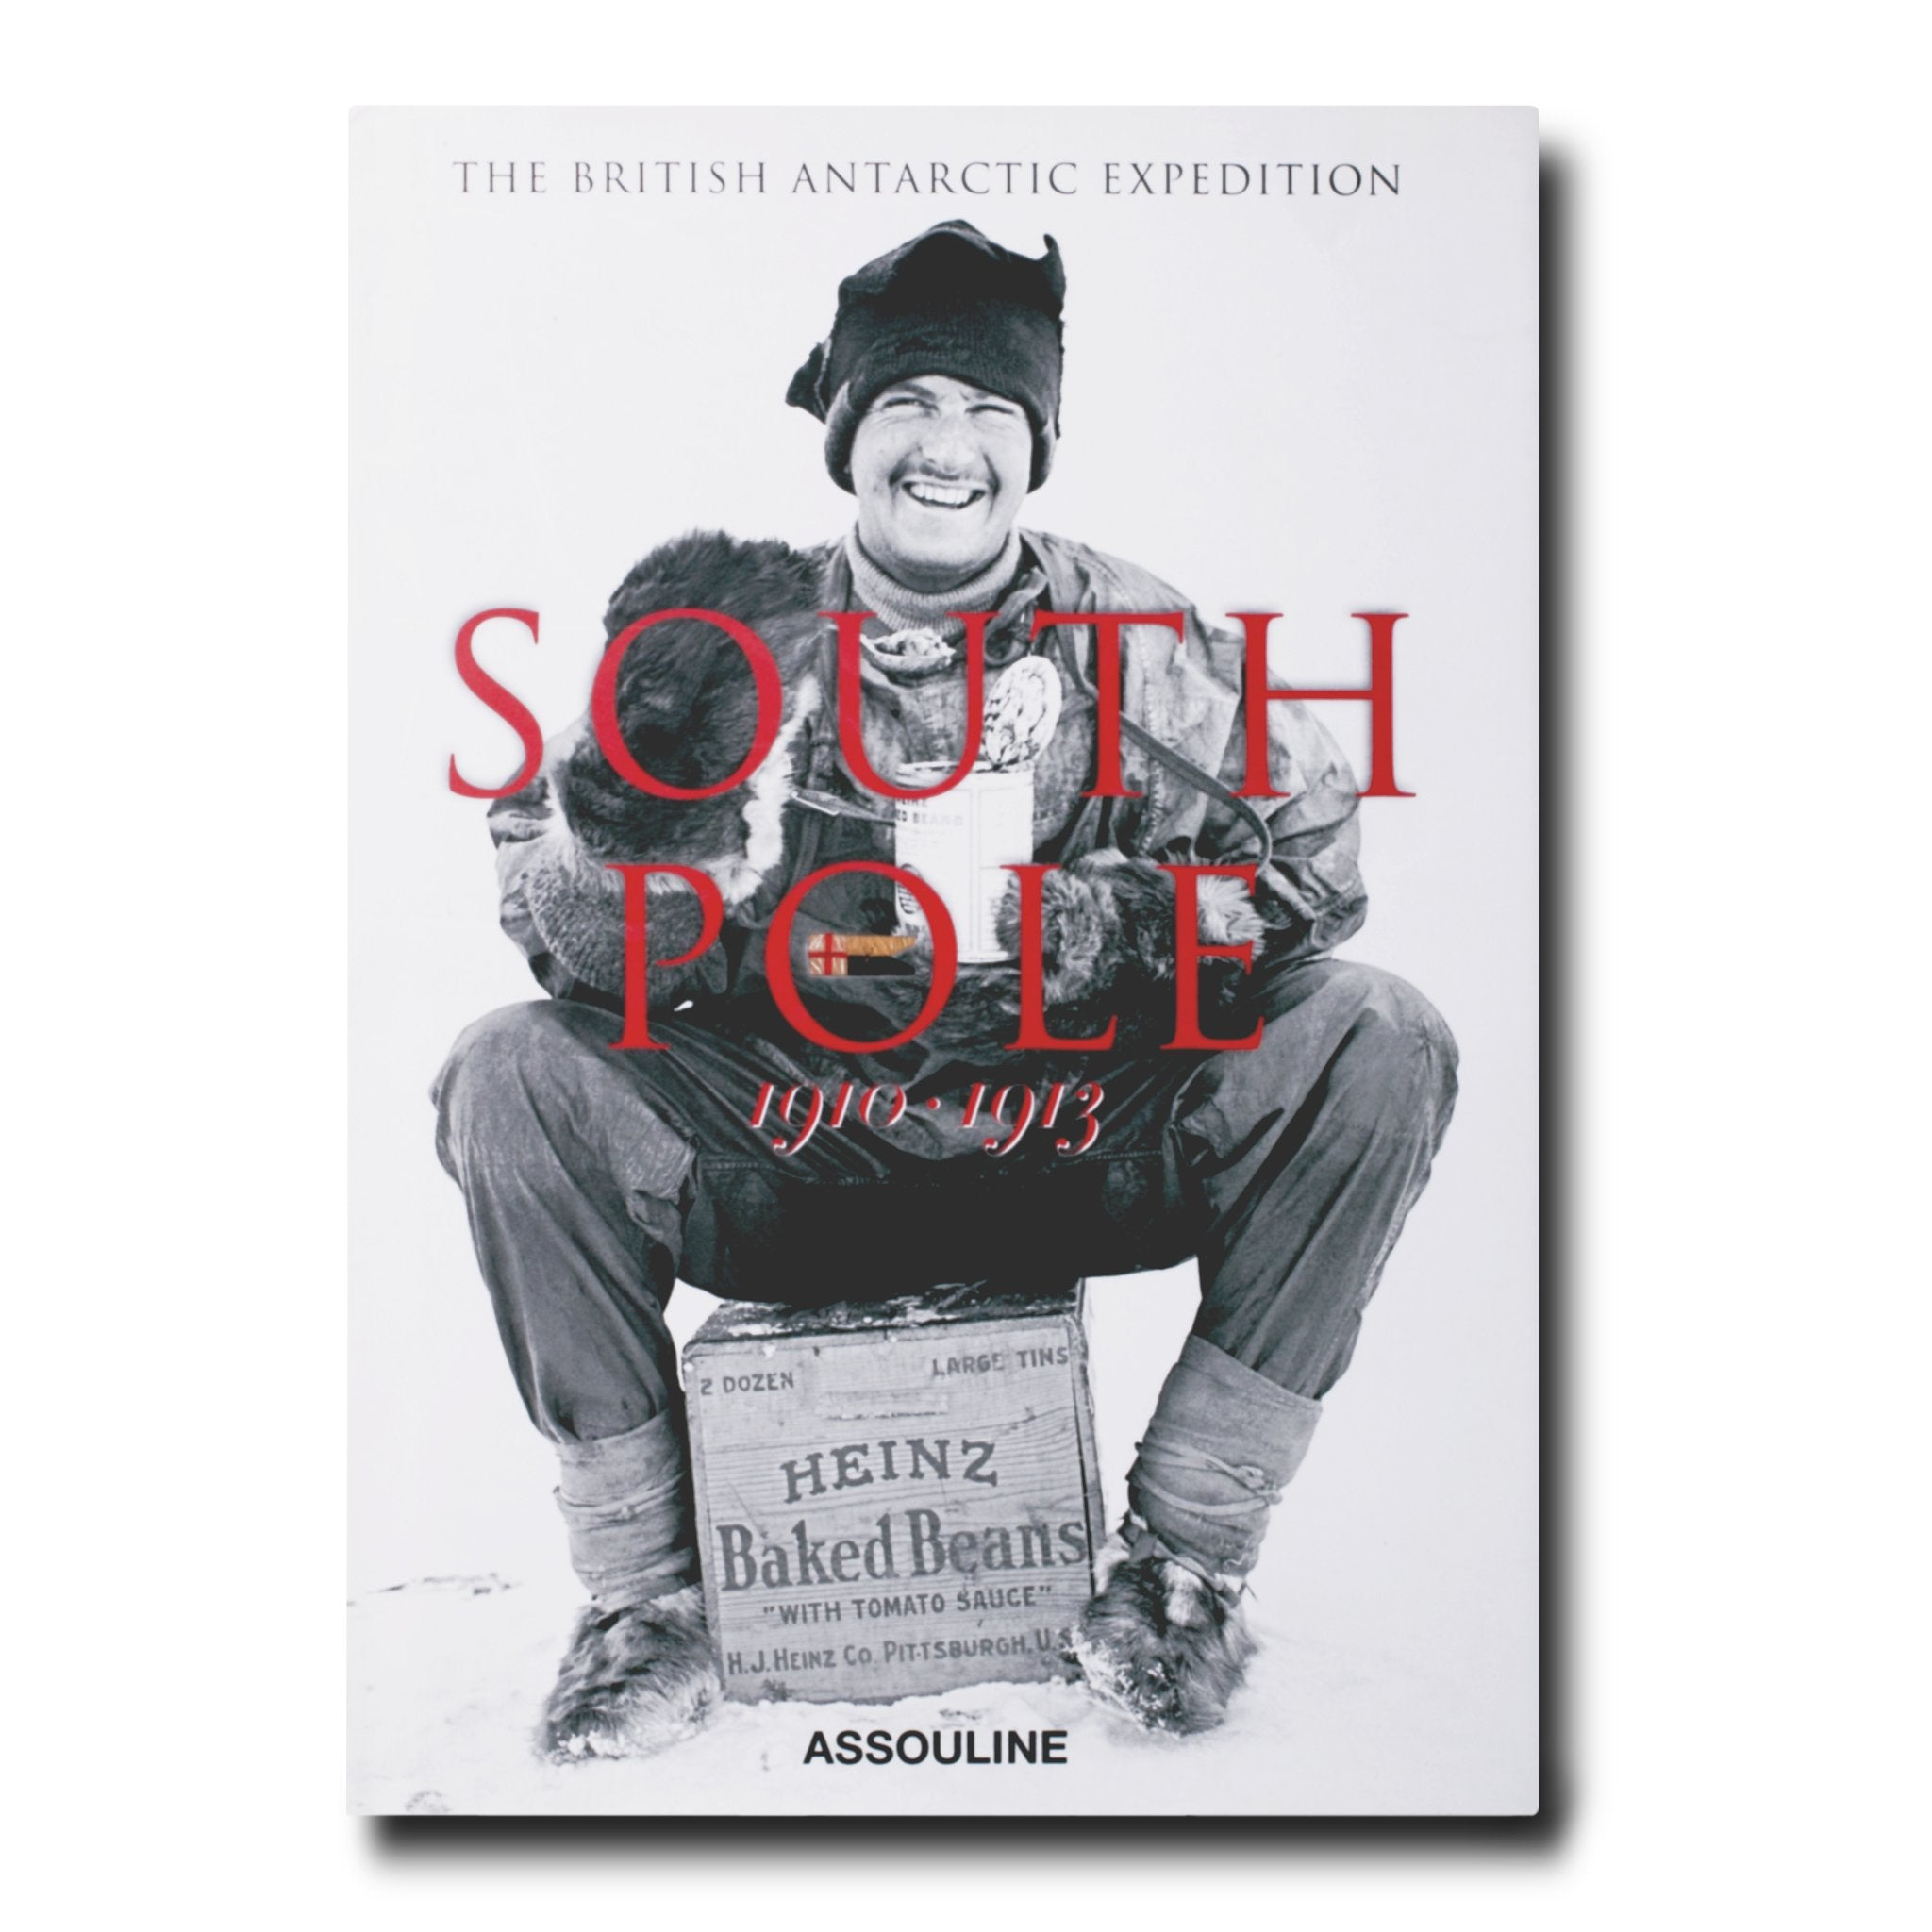 Assouline Books South Pole: The British Antarctic Expedition 1910